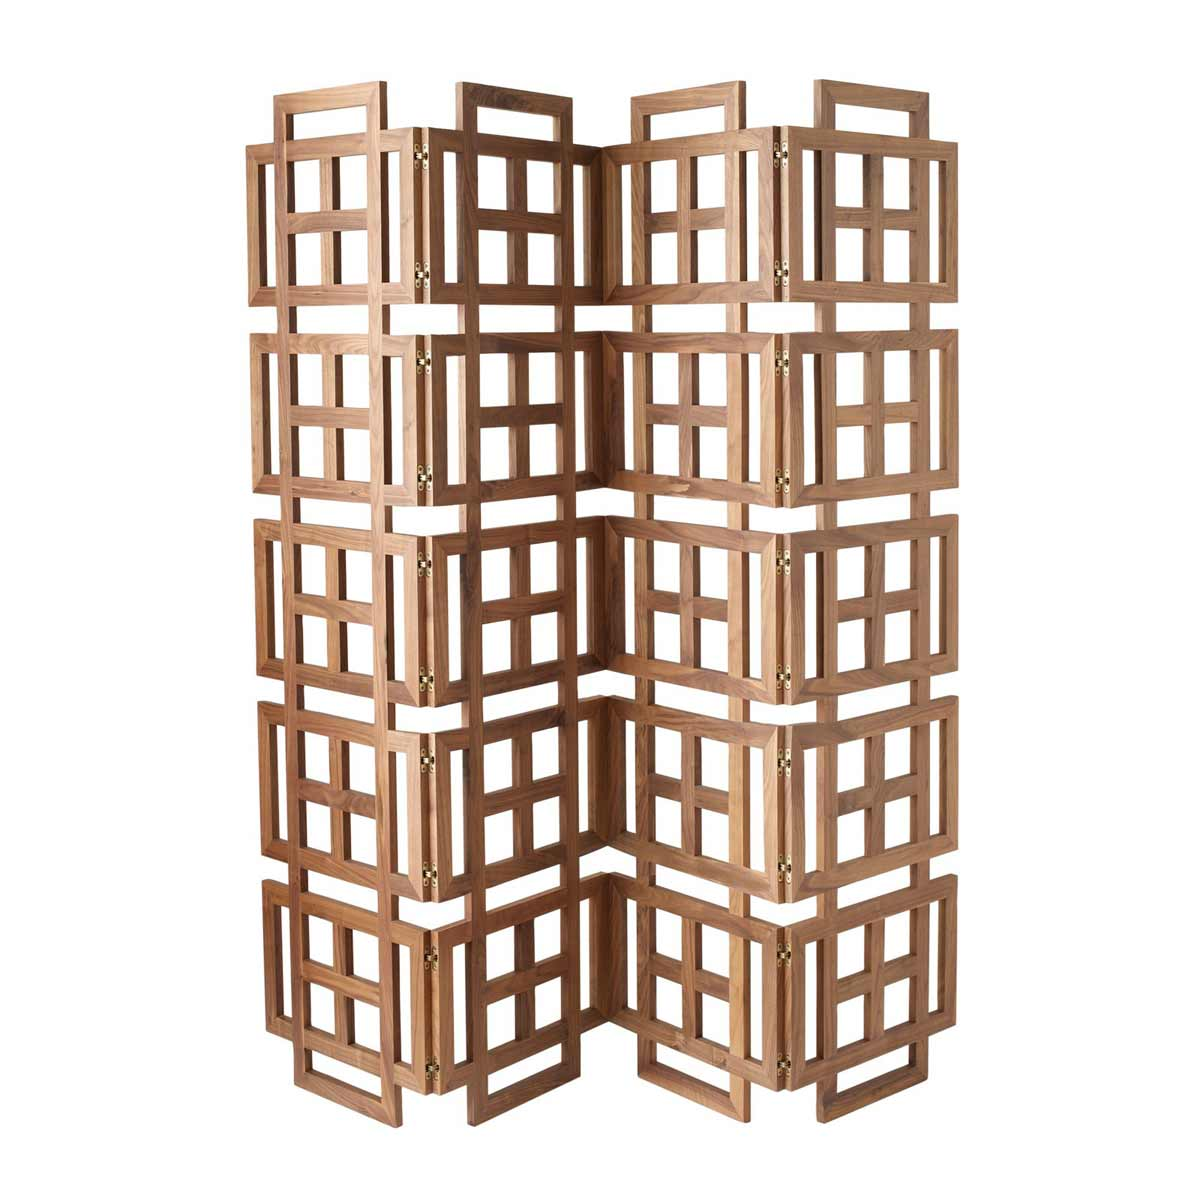 Decorative Wood Screens ~ Domestic room divider walls home christmas decoration